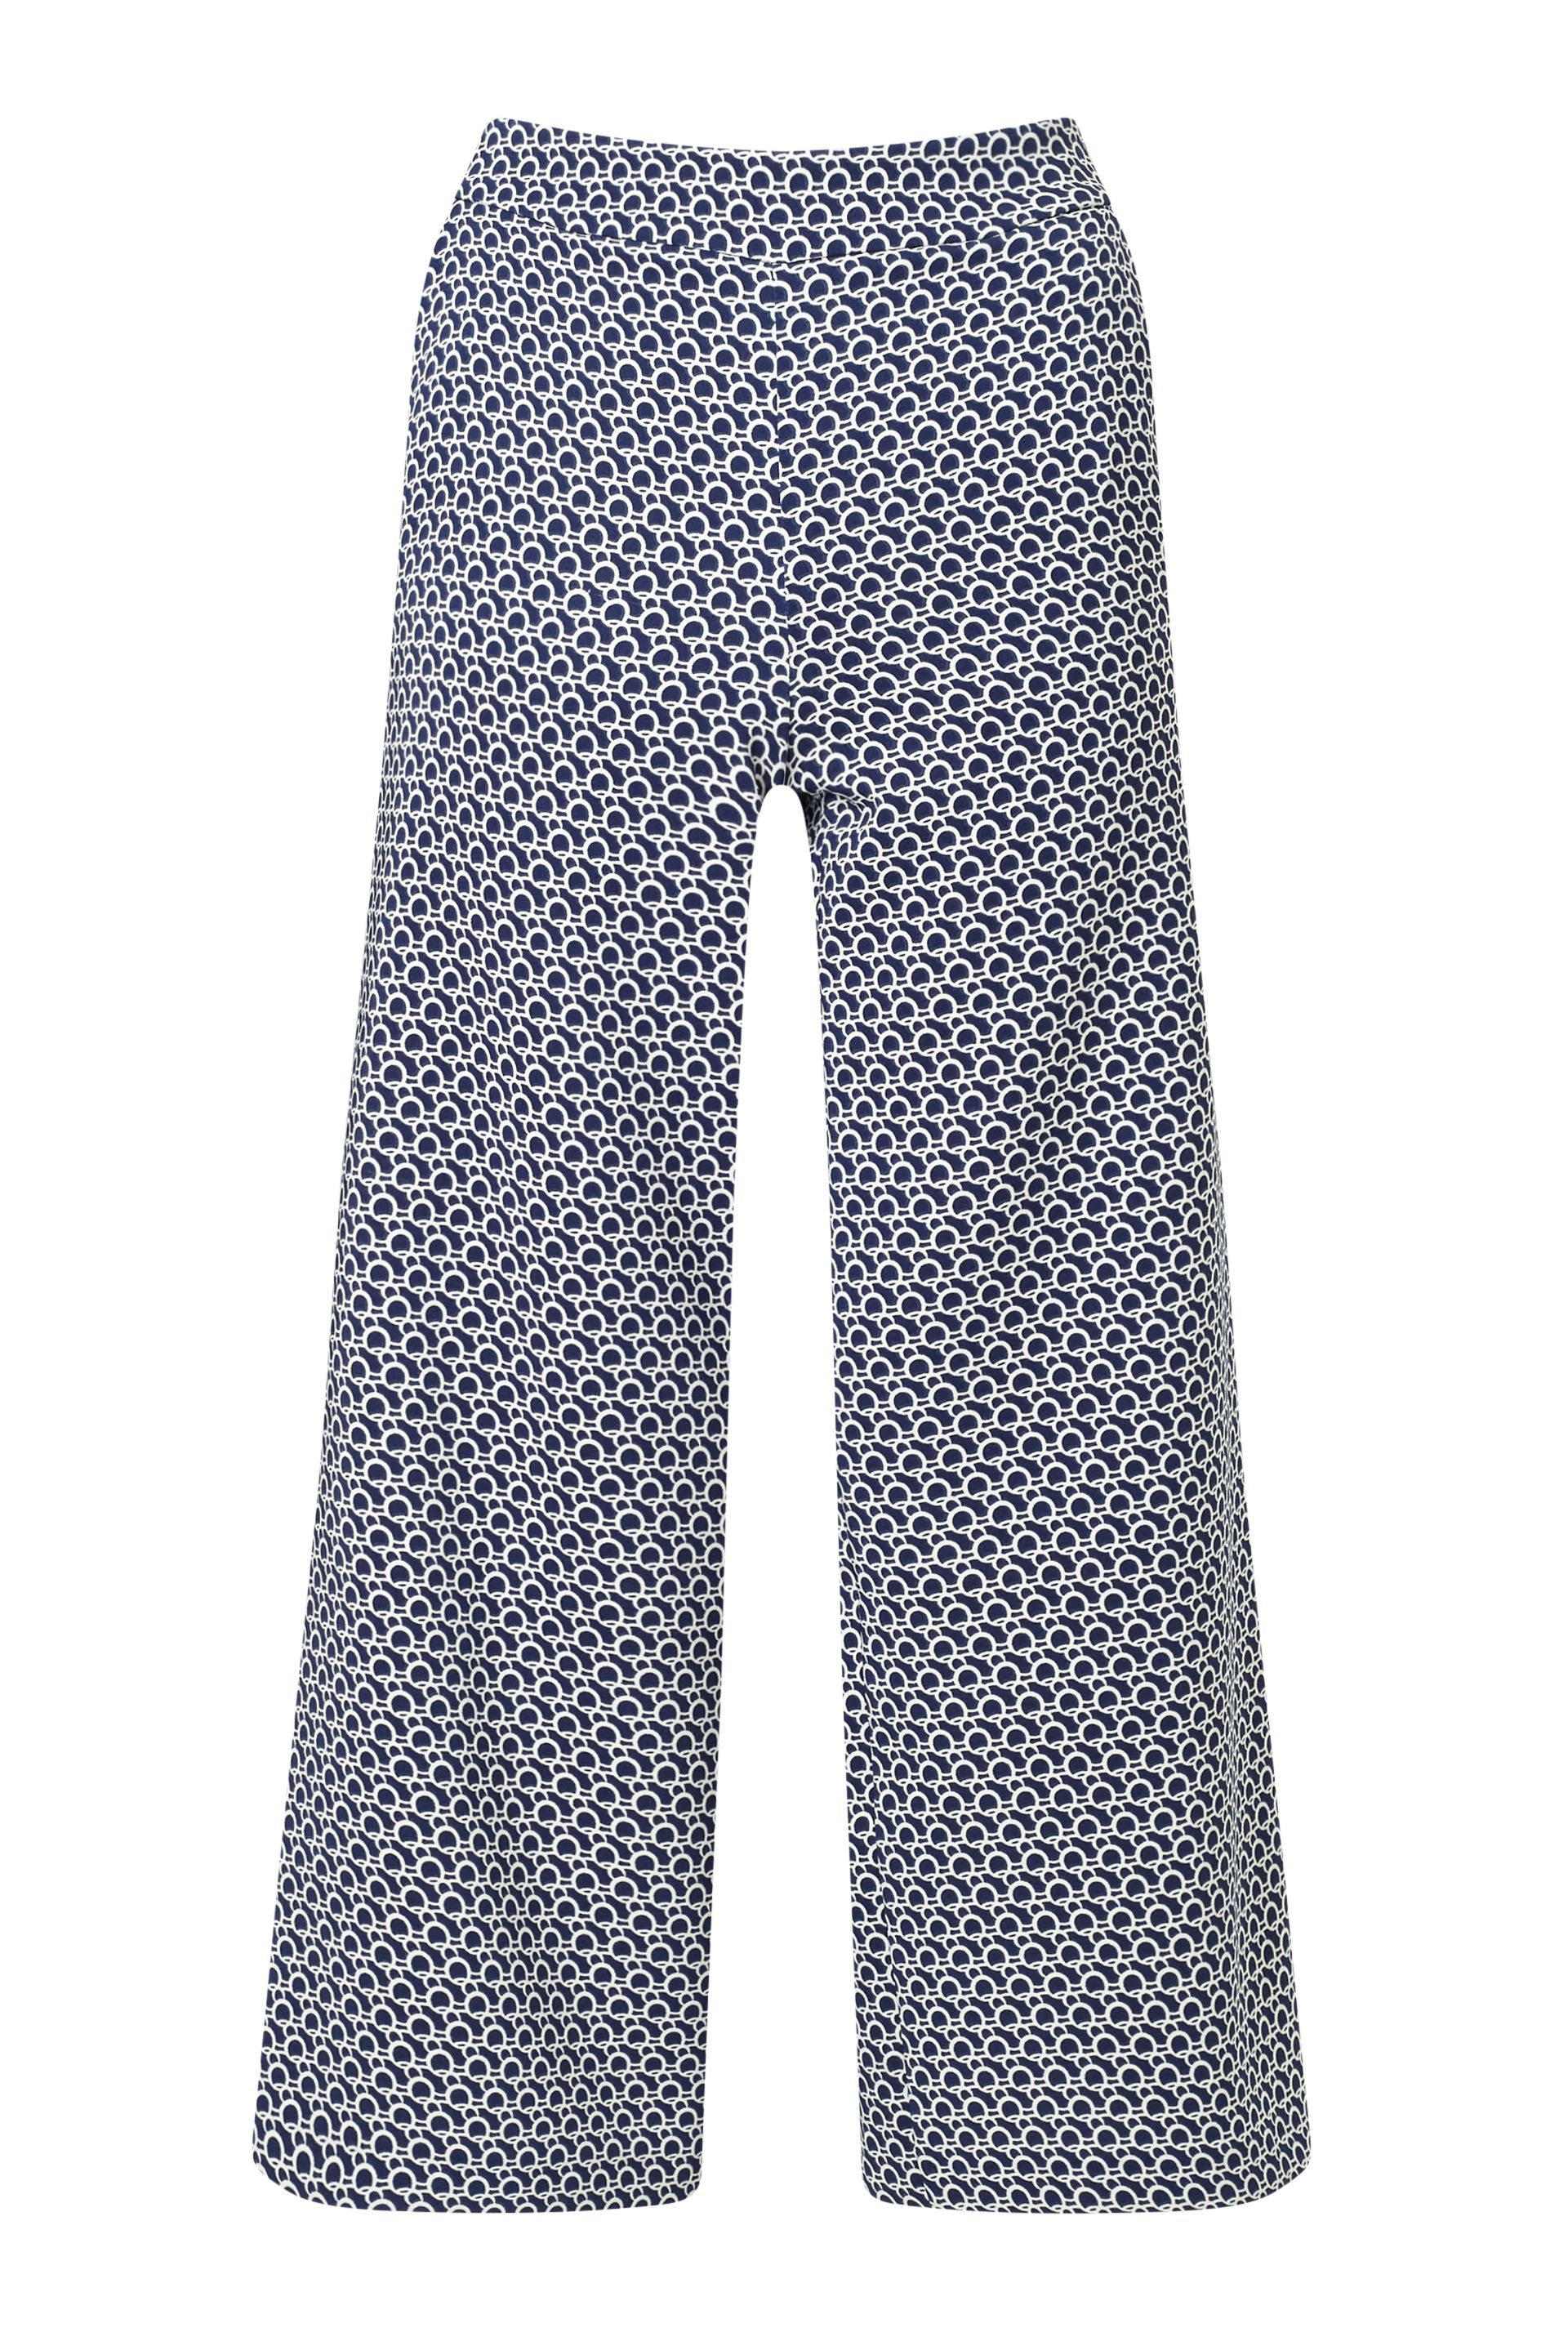 James Lakeland Print Wide Leg Culottes, Blue